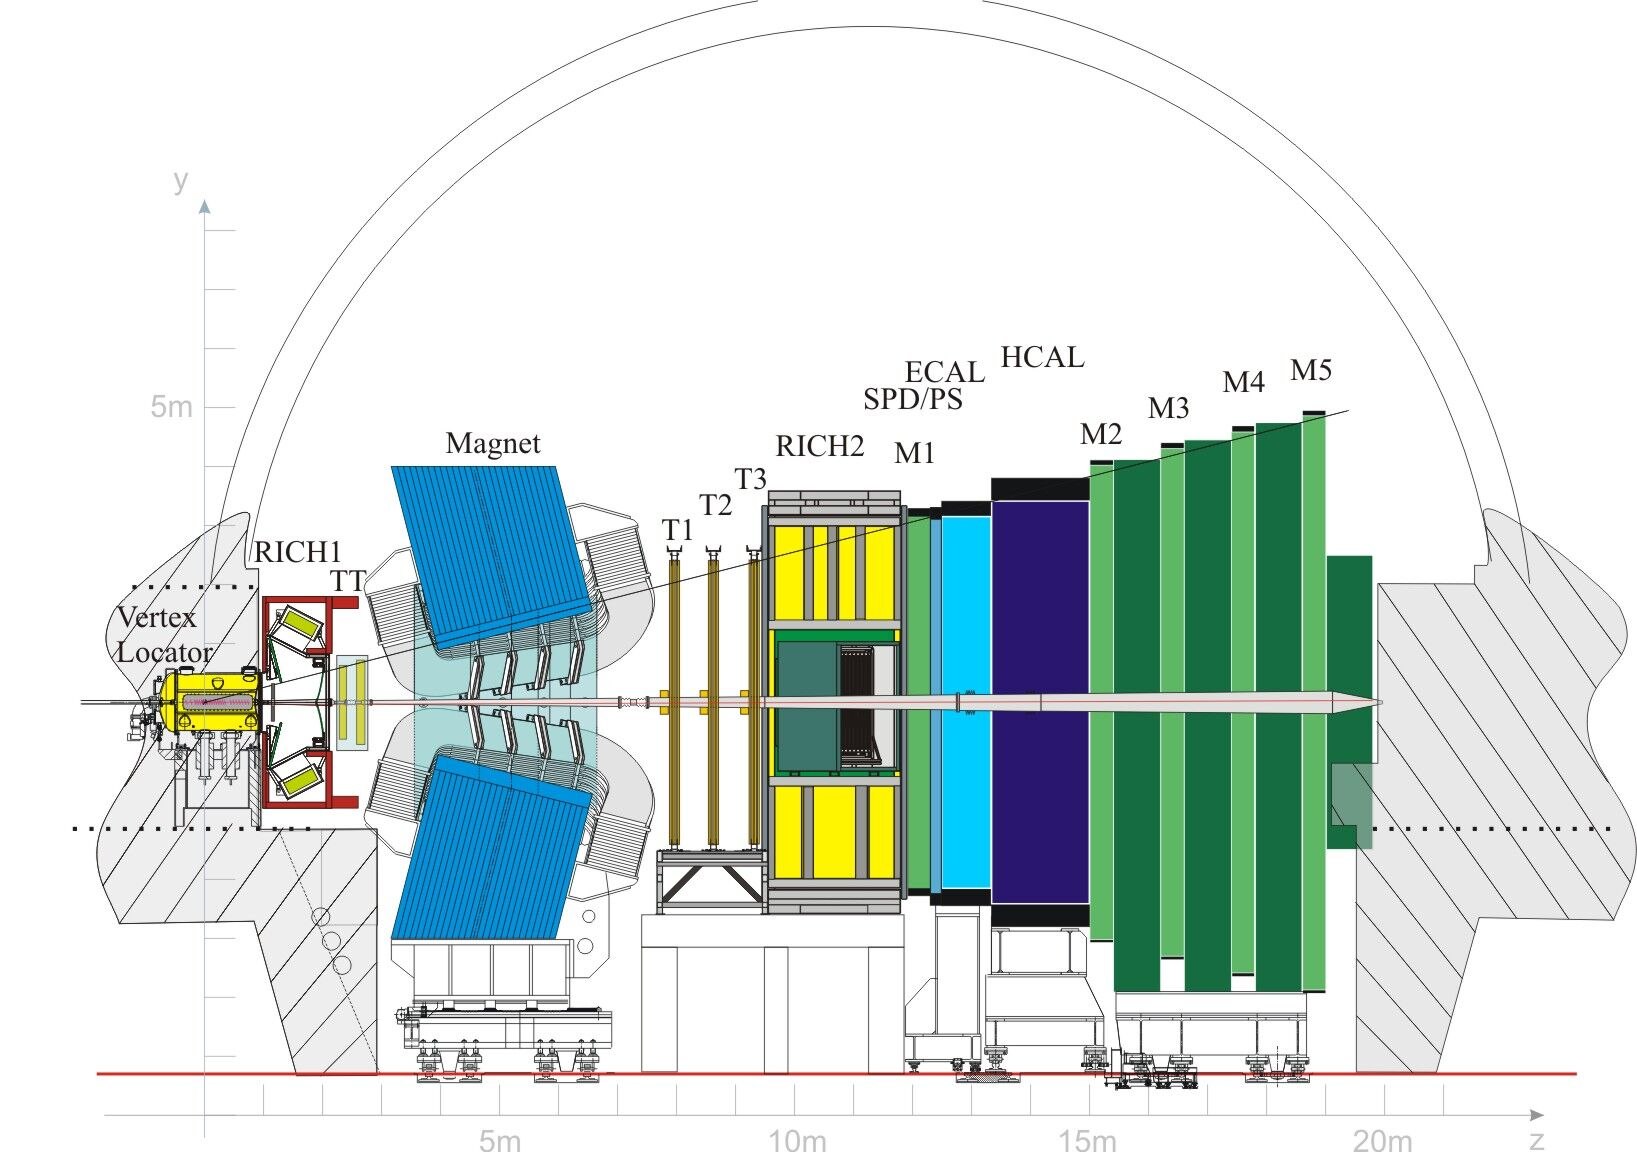 The Lhcb Detector